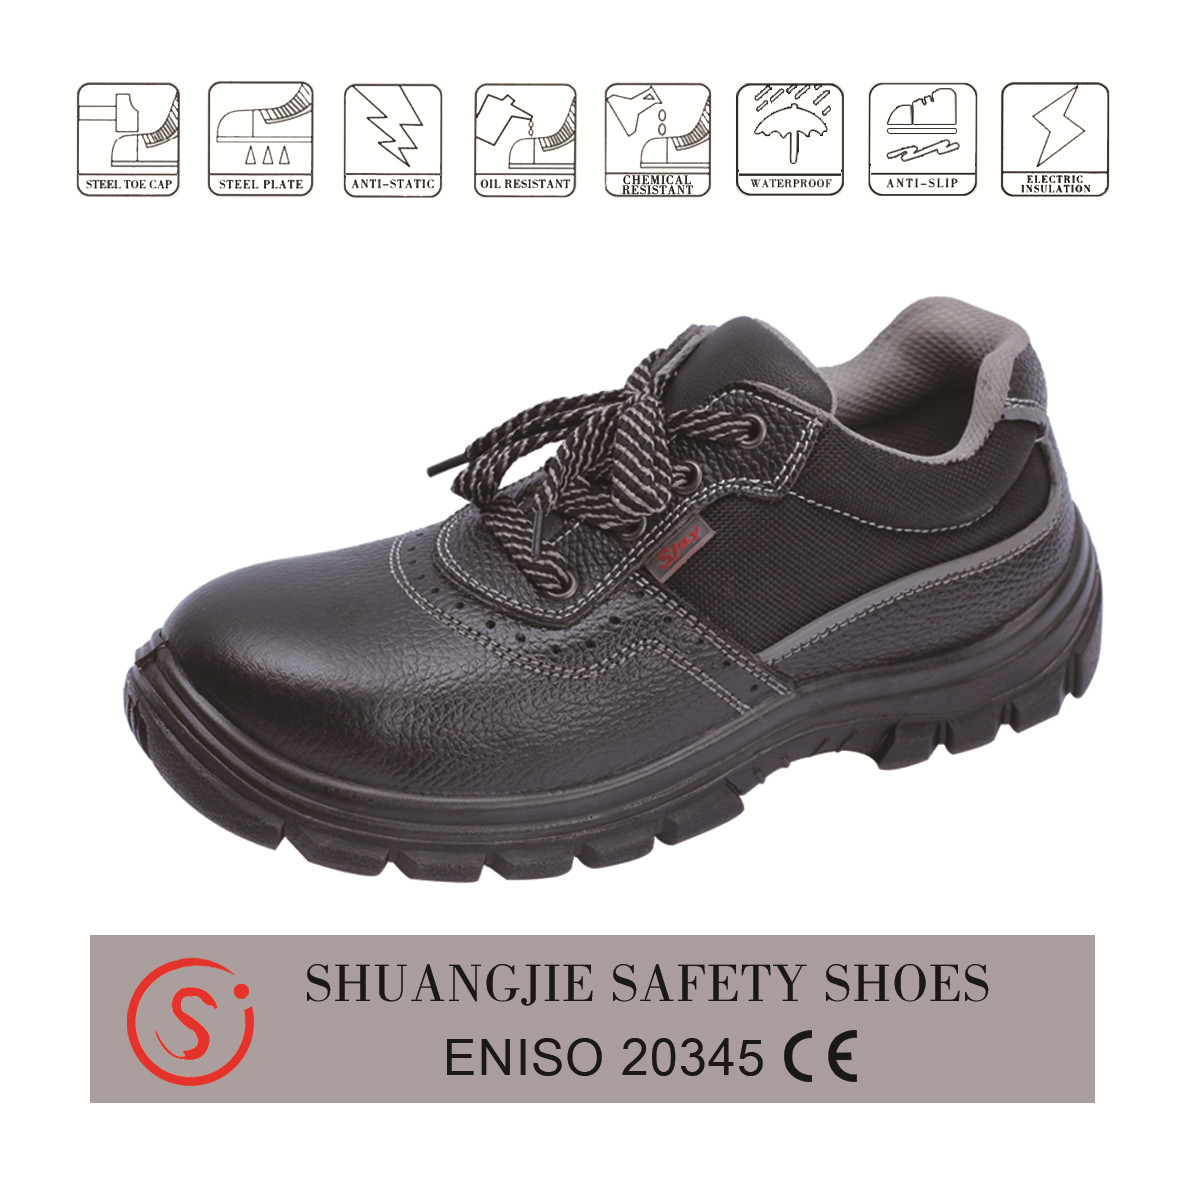 safety shoes work boots 9036 embossed leather pu outsole